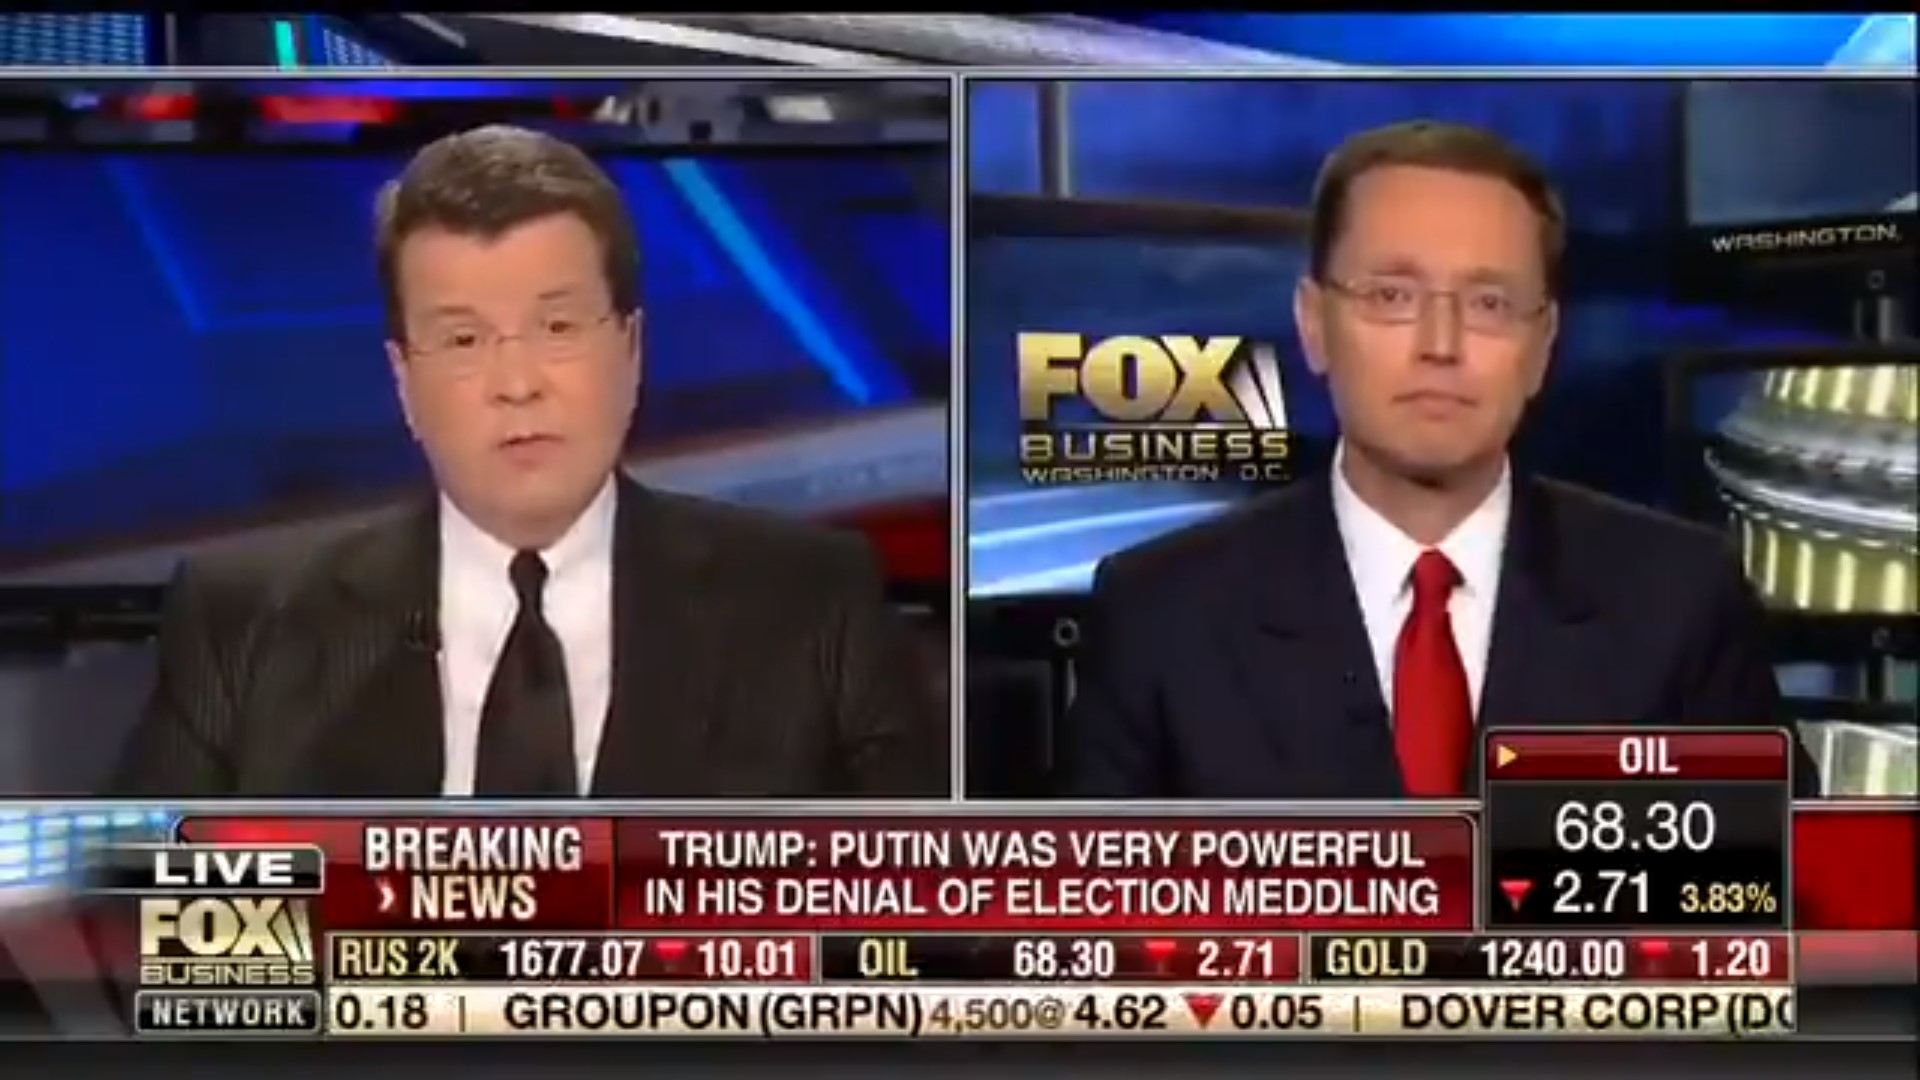 Fox's Neil Cavuto: Trump's Performance At Putin Presser 'Disgusting,' It 'Sets Us Back A Lot'